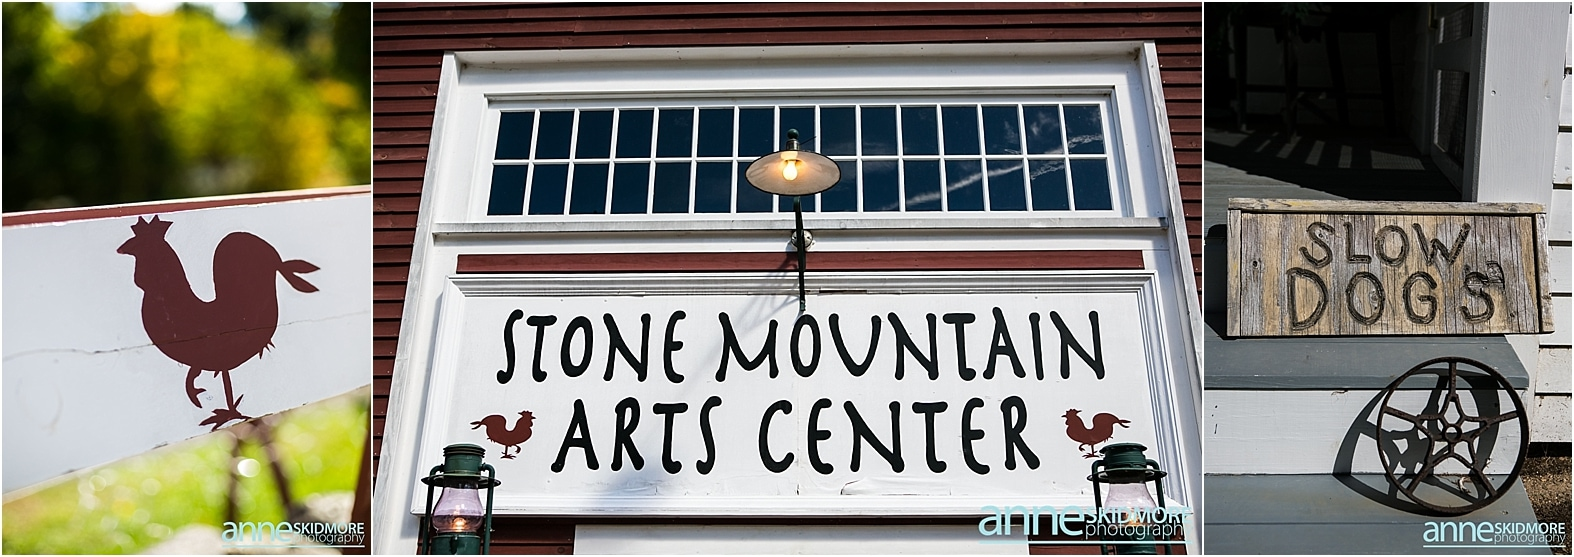 Stone_Mountain_Arts_Center_002